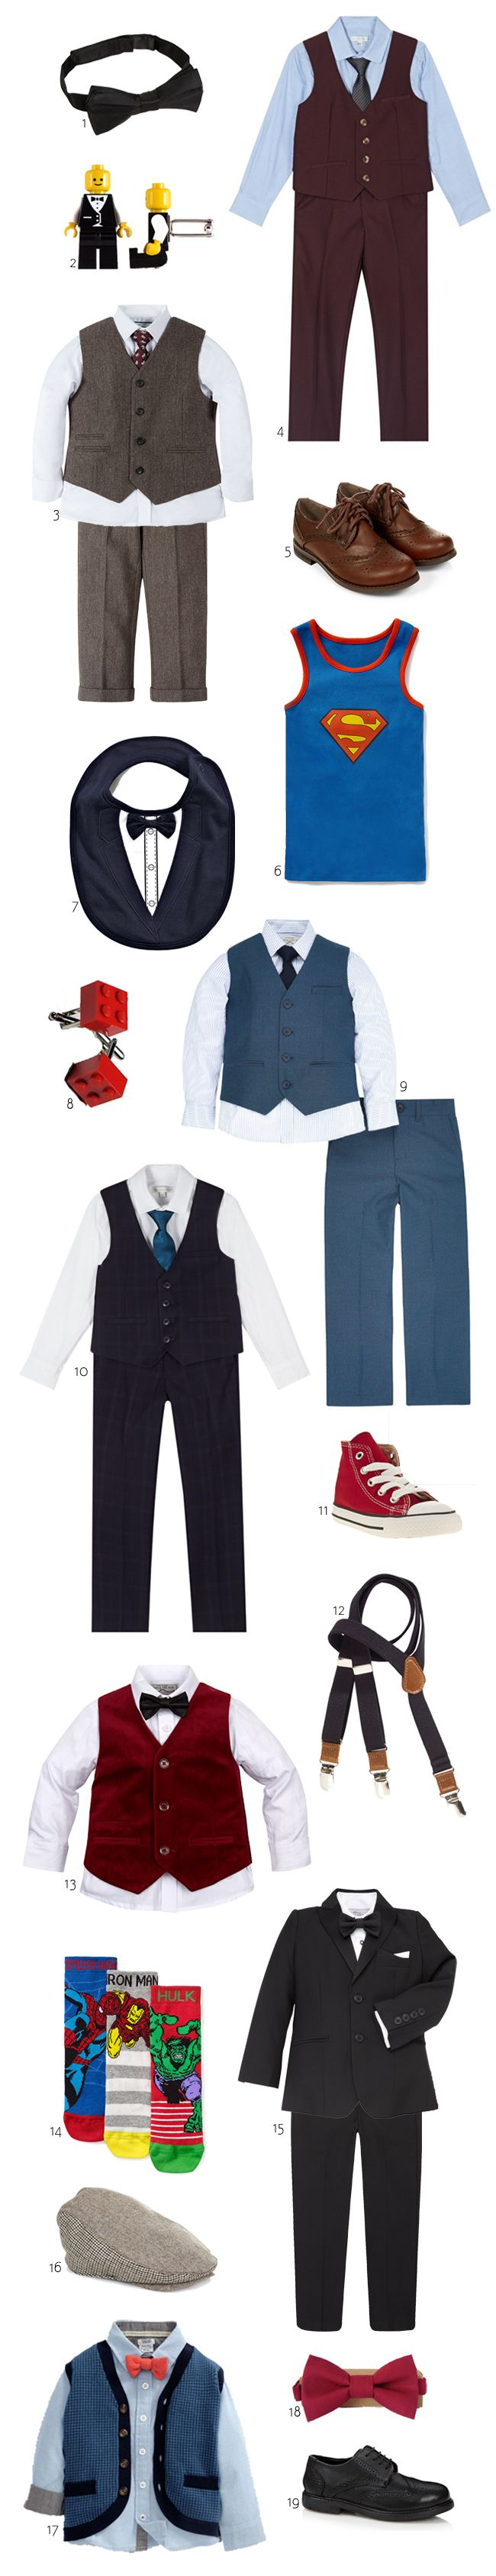 The cutest suits and accessories for winter page boys...